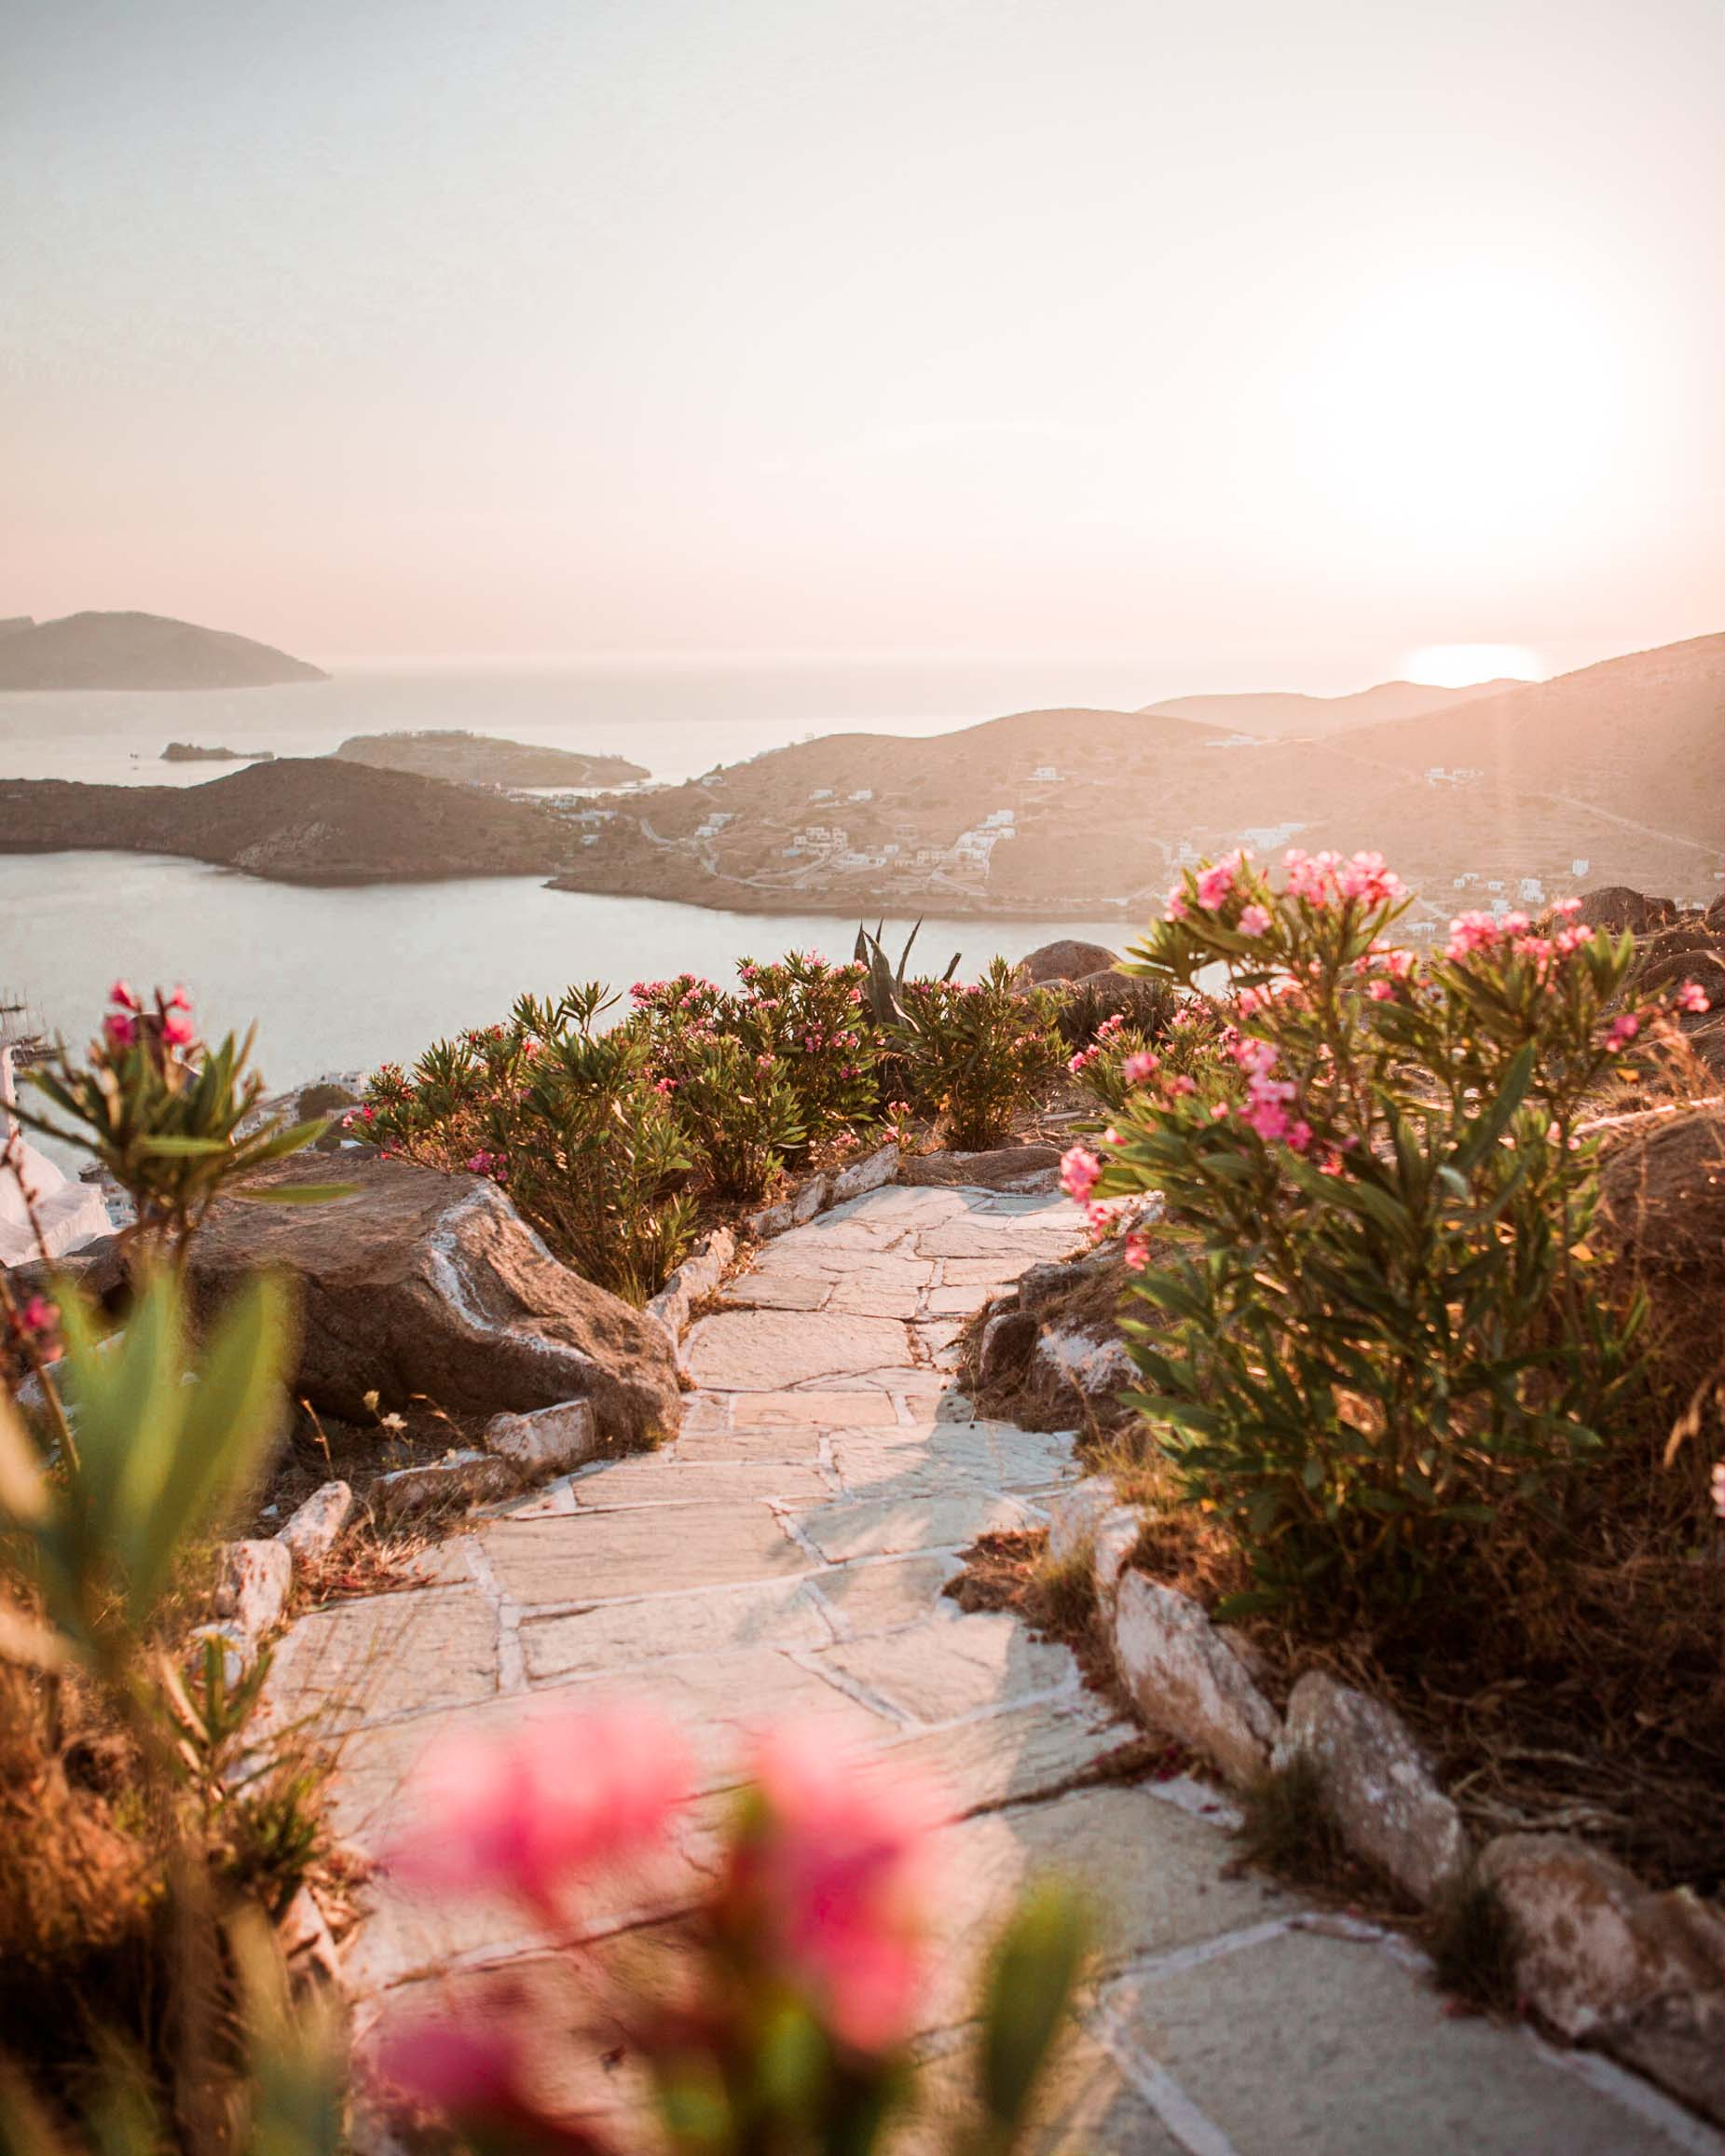 One of the best greek islands to visit - Ios via @haylsa